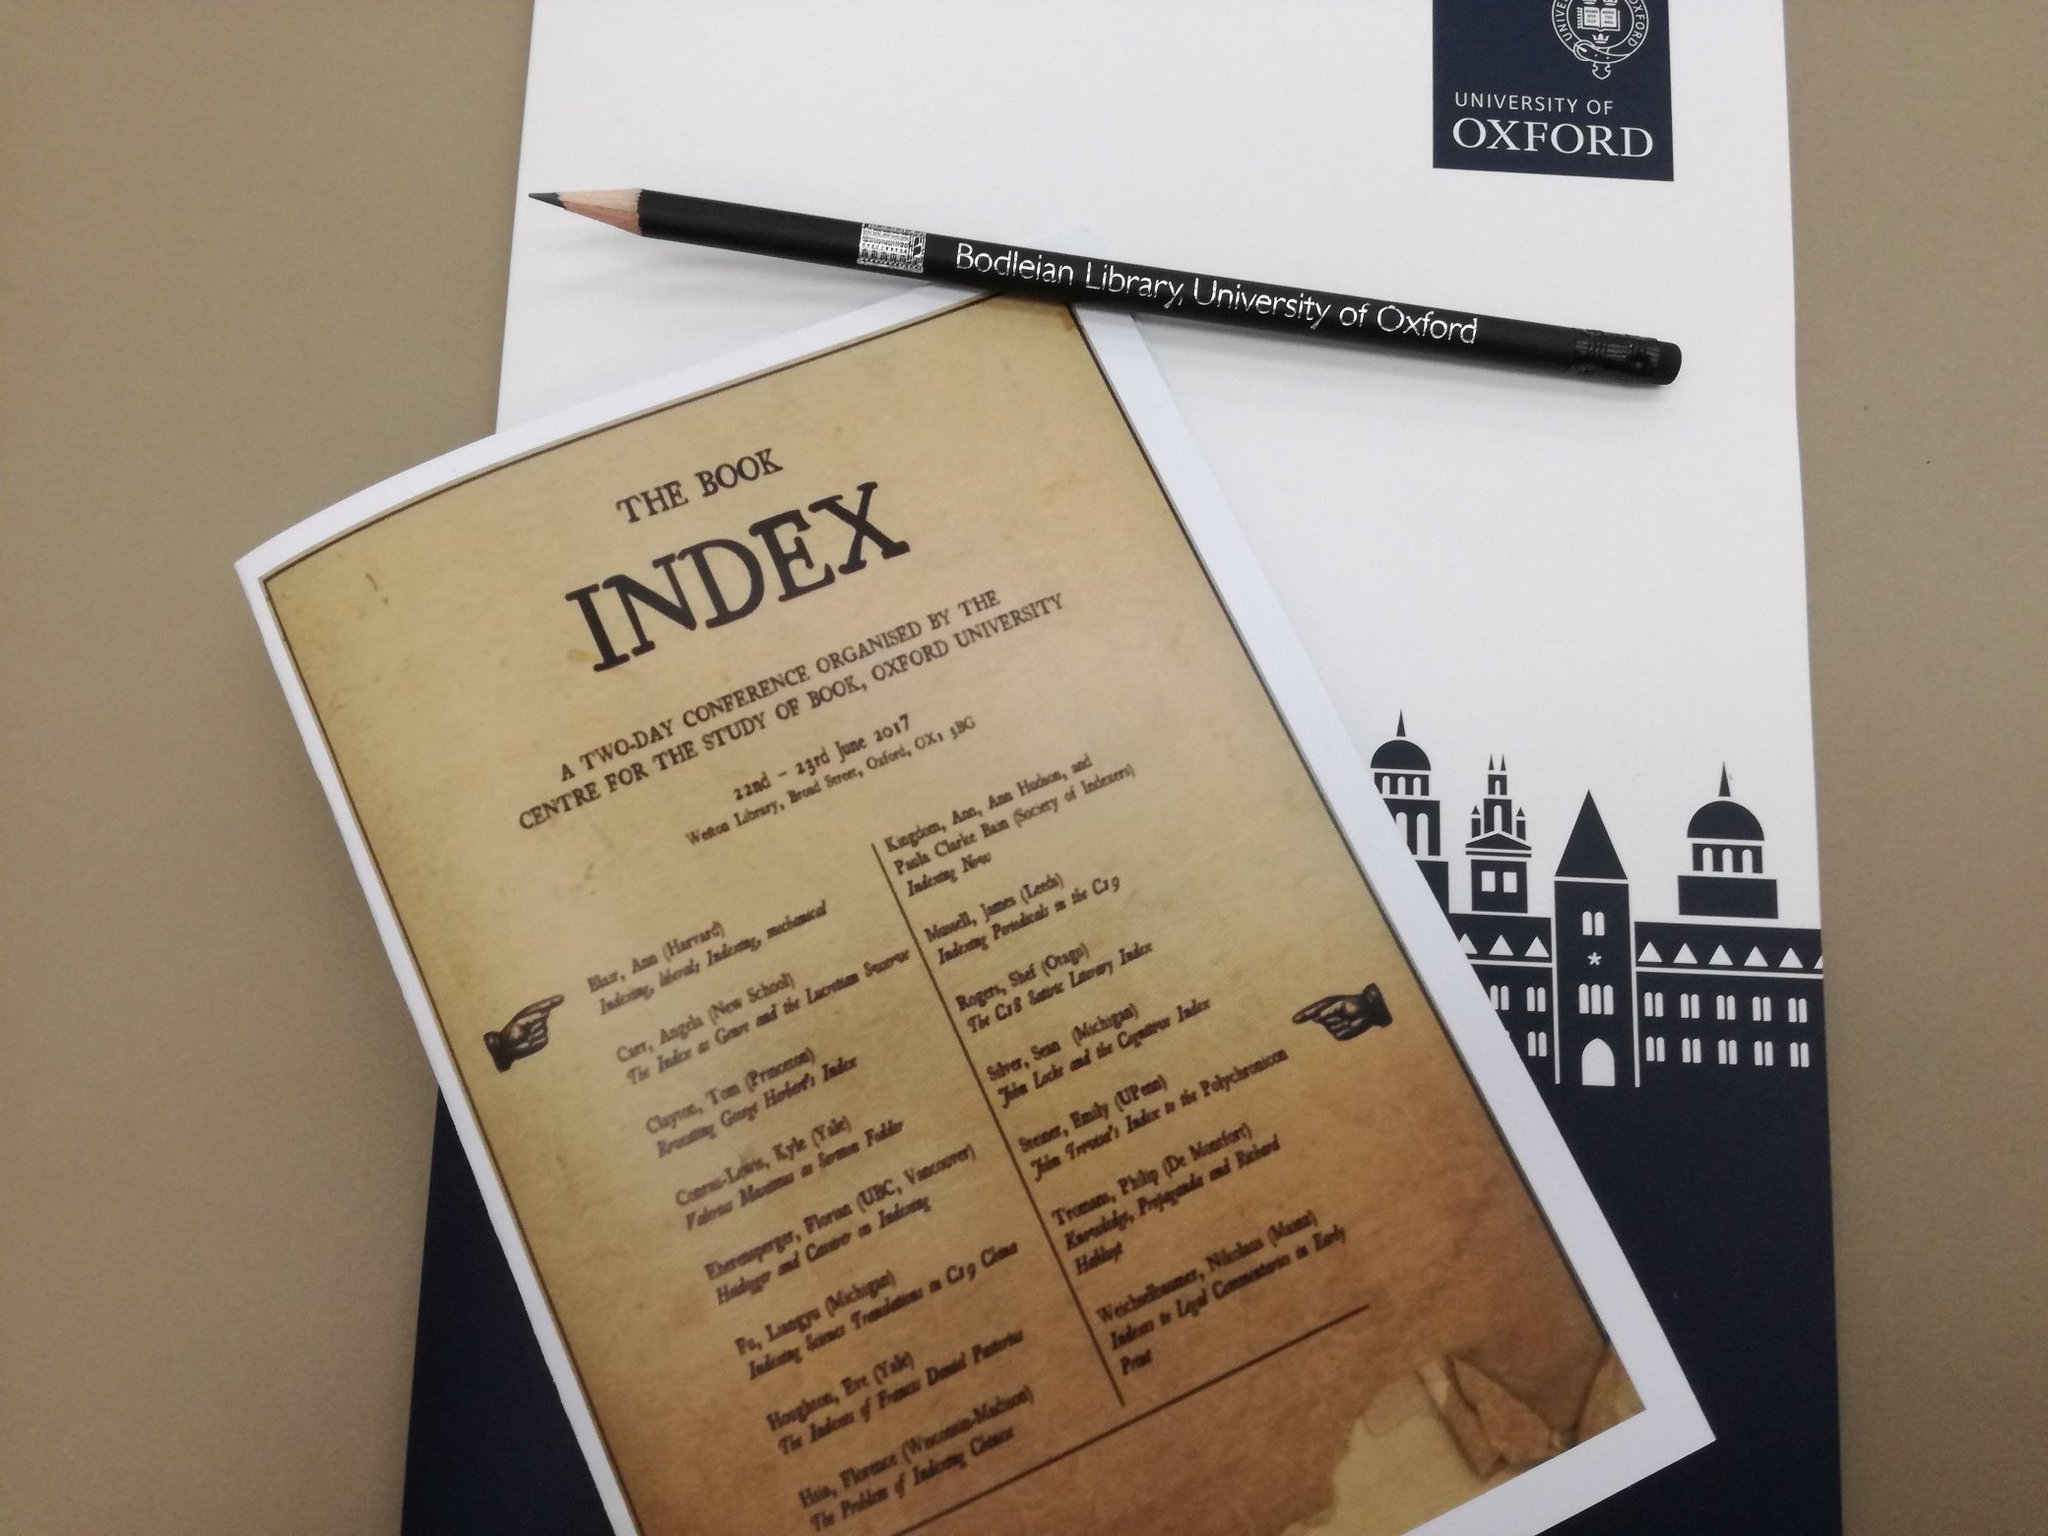 Time for the second book indexing conference of the week @bodleiancsb. Society of @Indexers panel on this afternoon. #bookindex17 https://t.co/PnGazOF7tv